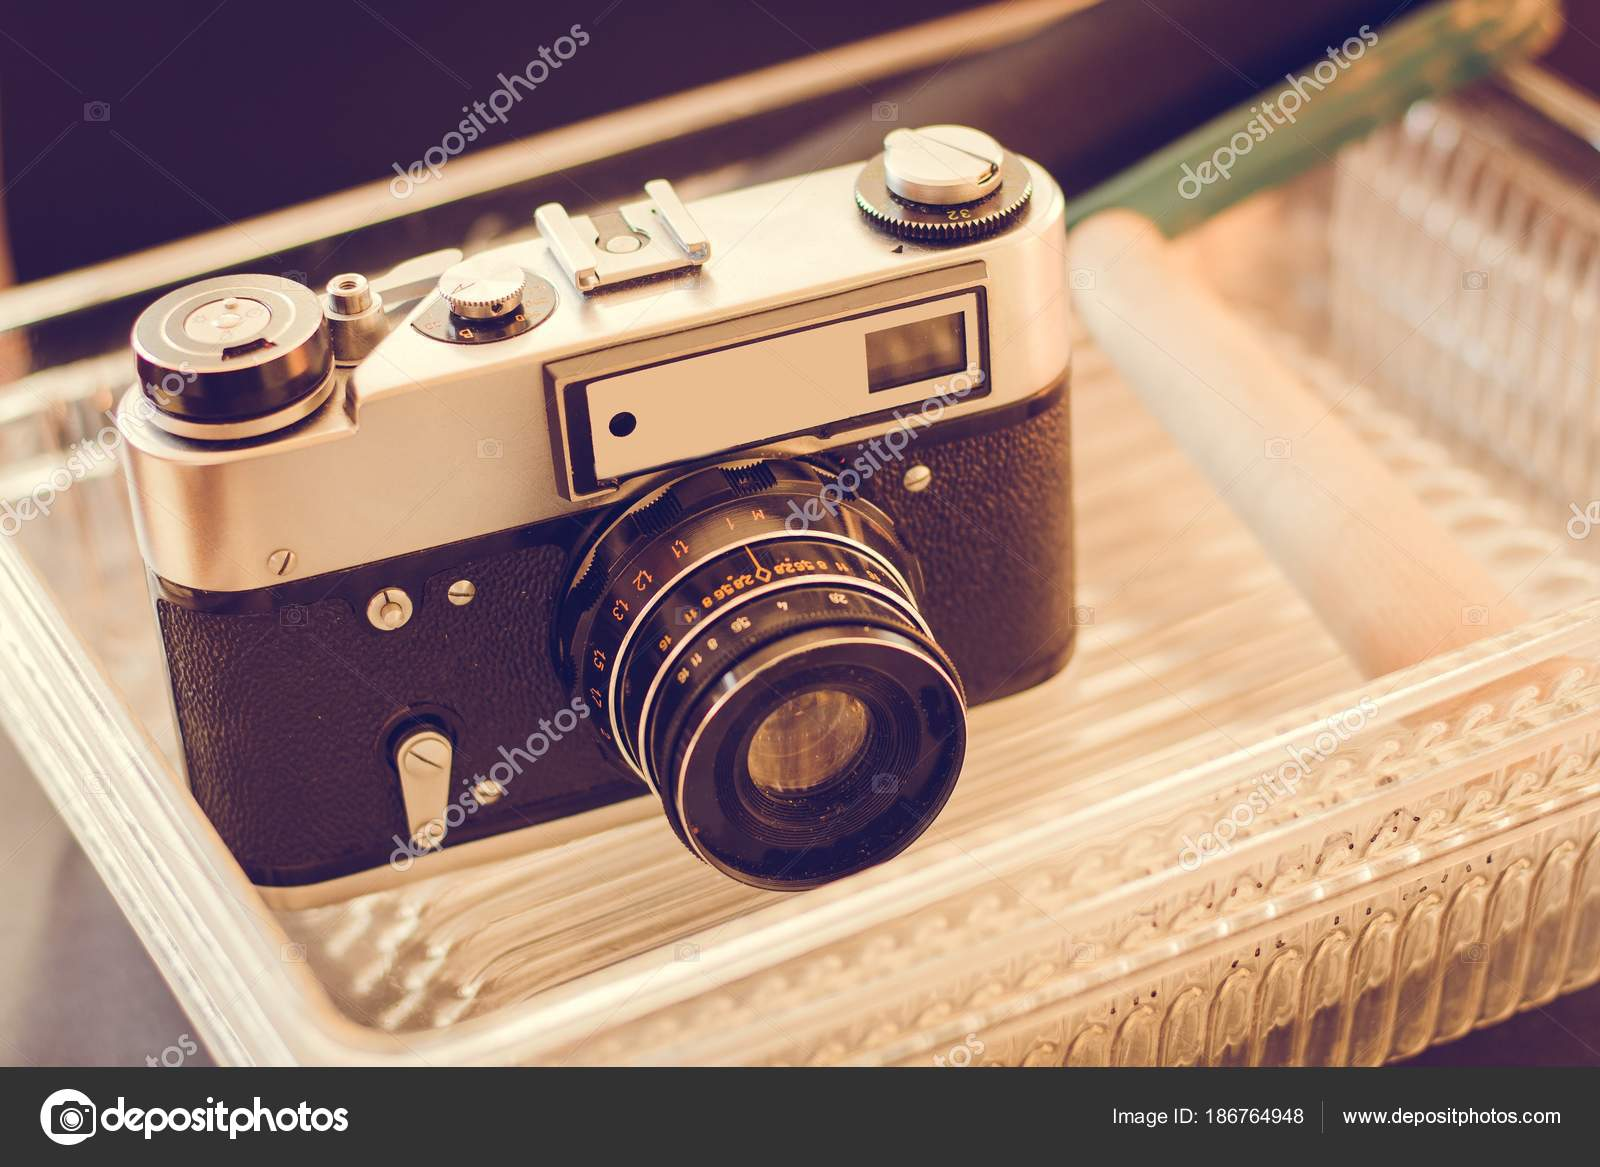 Old Photo Camera Objects Developing Photos Accessories